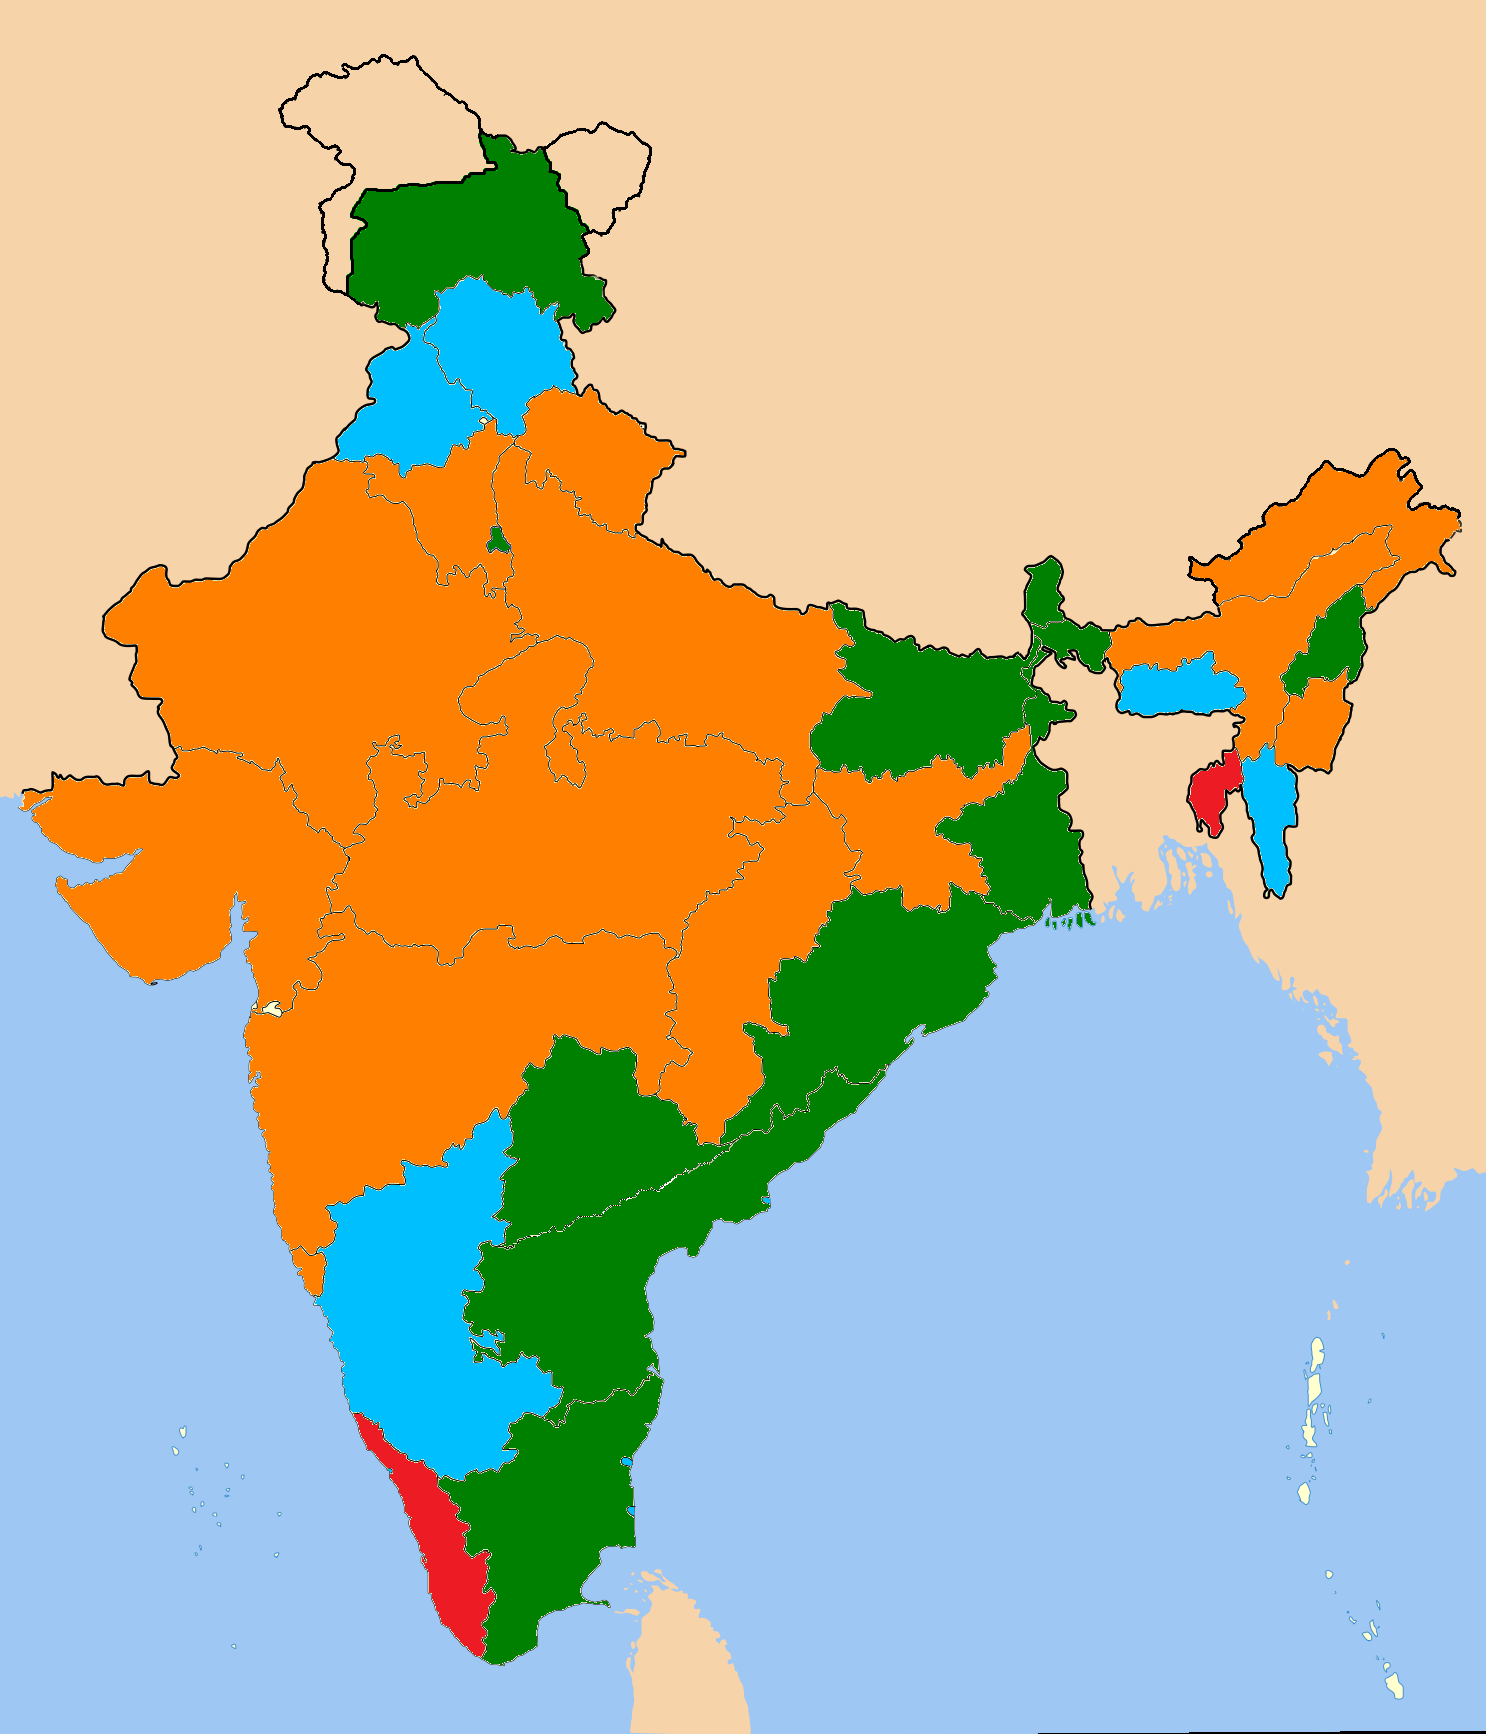 India States Map 2016.India States And Union Territories And Political Parties Dr